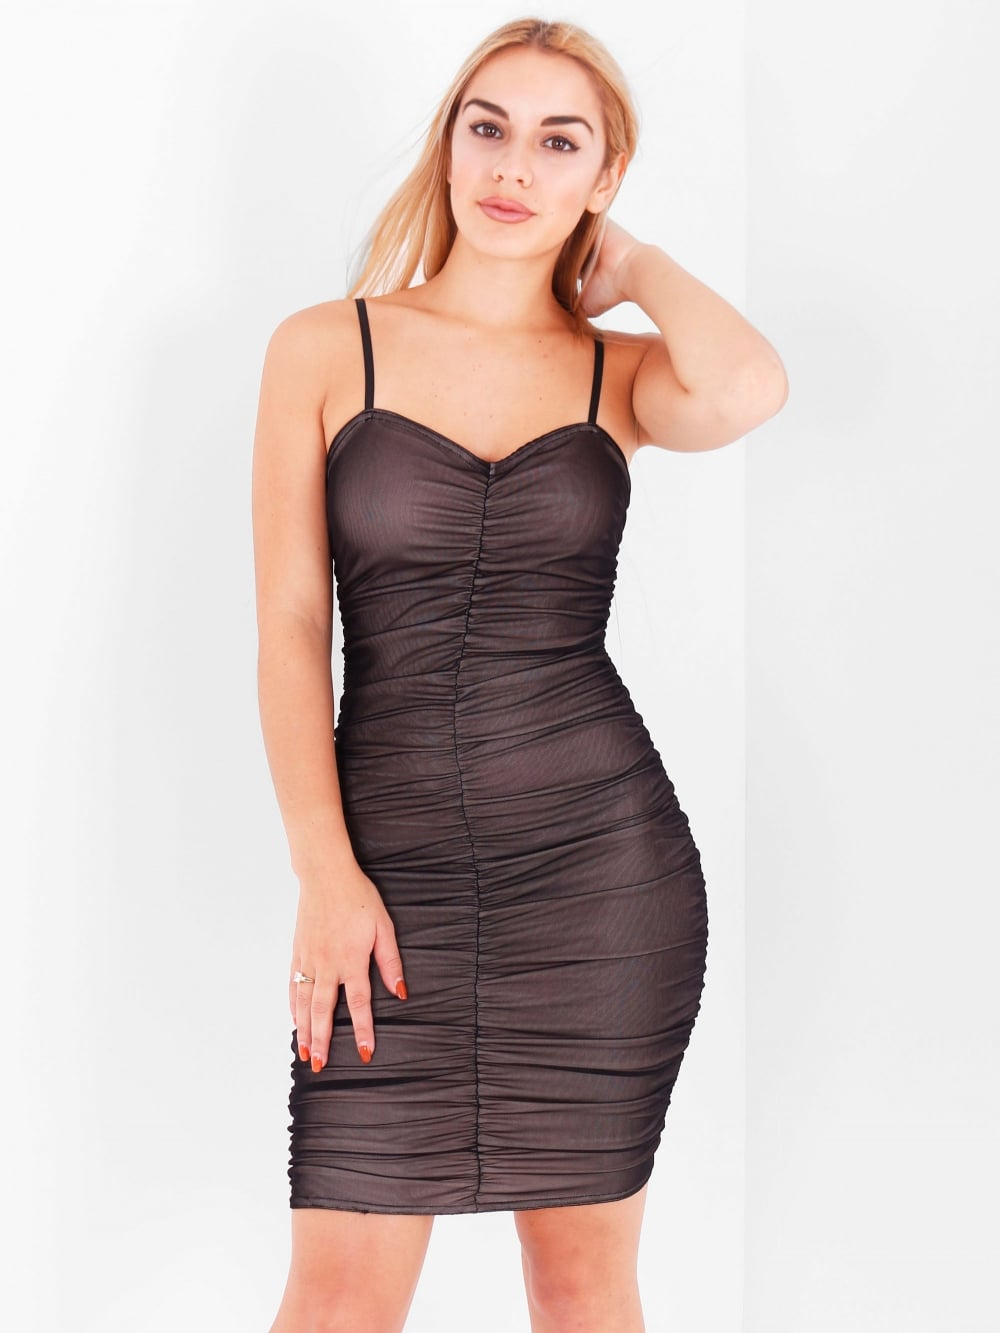 Nude Effect Sheer Bodycon Dress - Inoxclothing